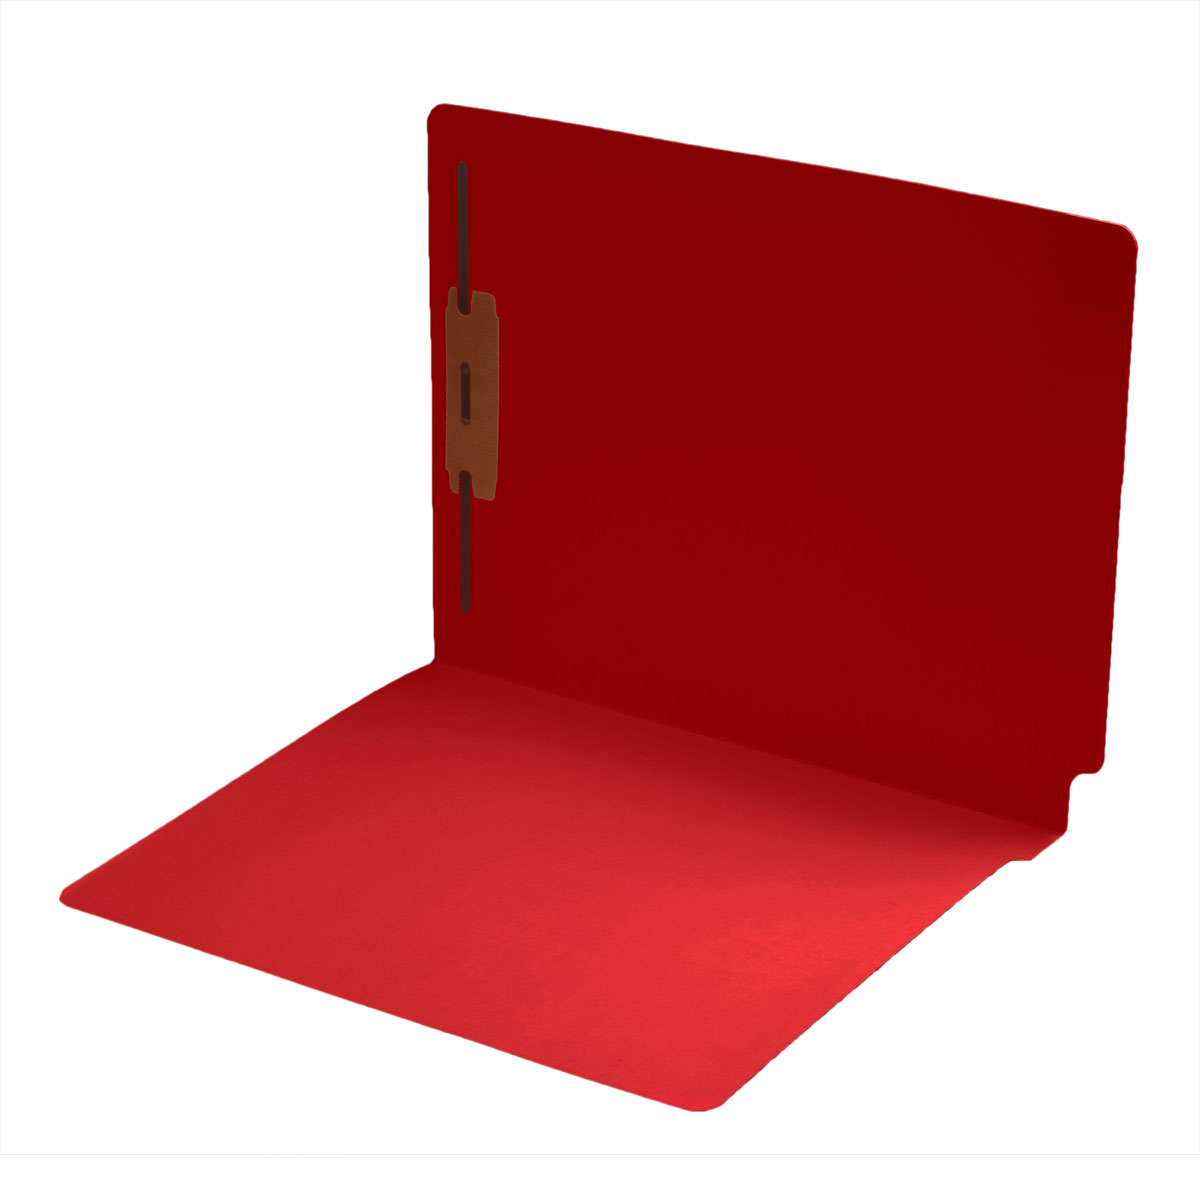 S-1601-RED - 14 pt Color Folders, Full Cut 2-Ply End Tab, Letter Size, Fastener Pos #1, Red (Box of 50)